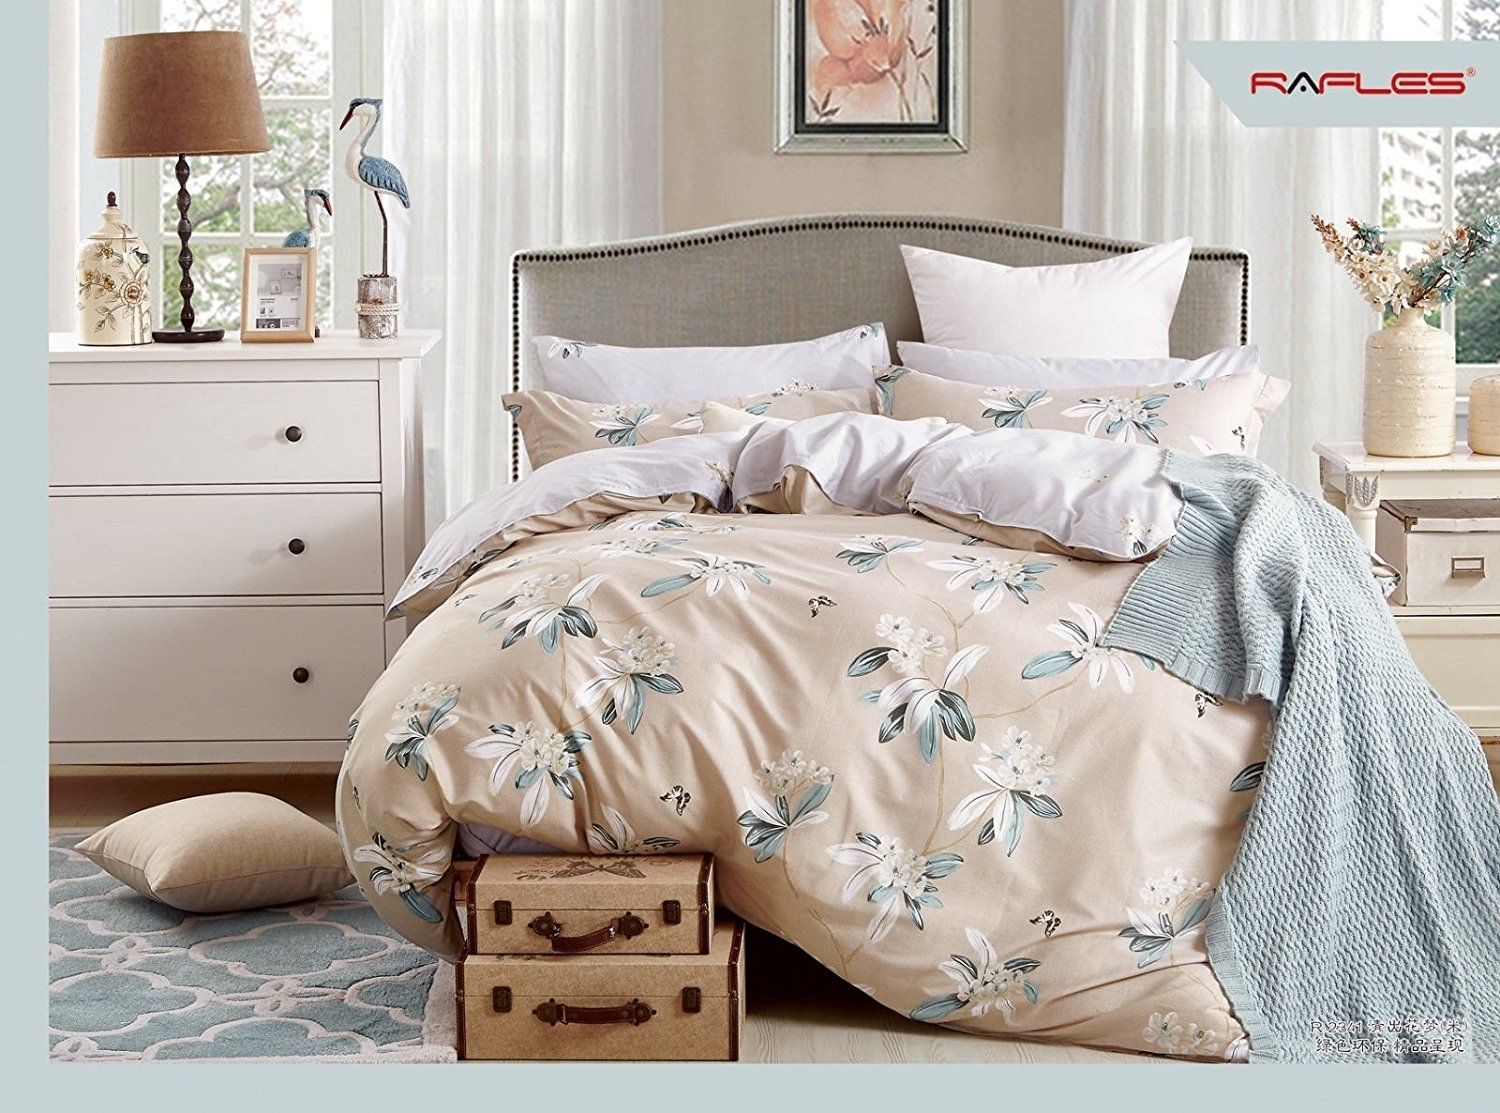 King Bed Duvet Set in Blush Pink